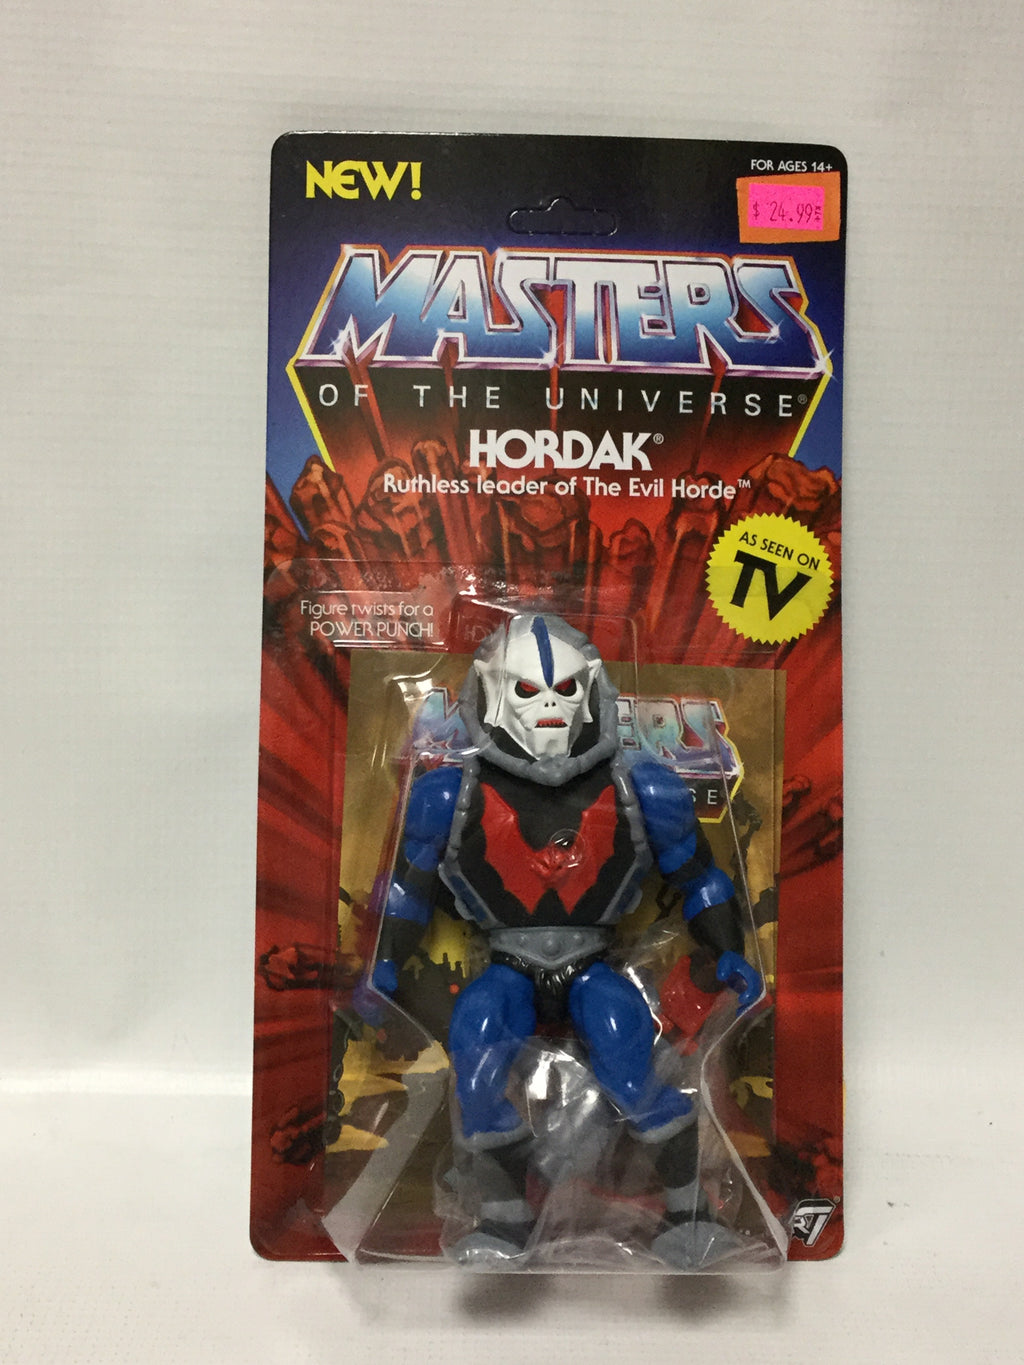 Super 7 New Masters Of The Universe Hordak As Soon On TV